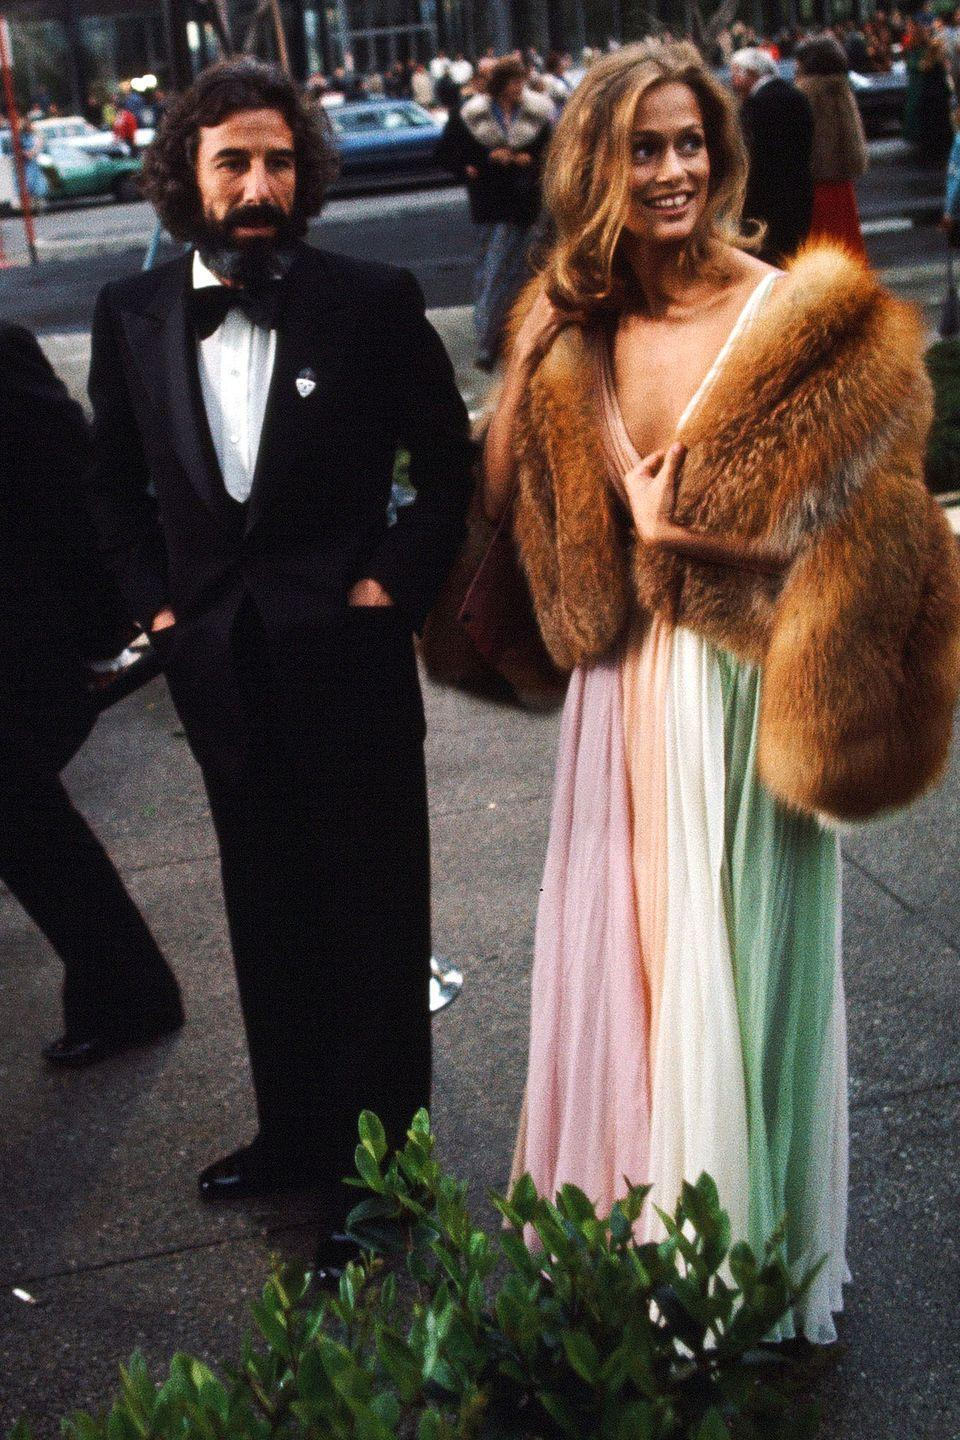 <p>Lauren Hutton was an example of the relaxed glamour of the '70s in her rainbow Halston gown and chubby fur jacket.</p>